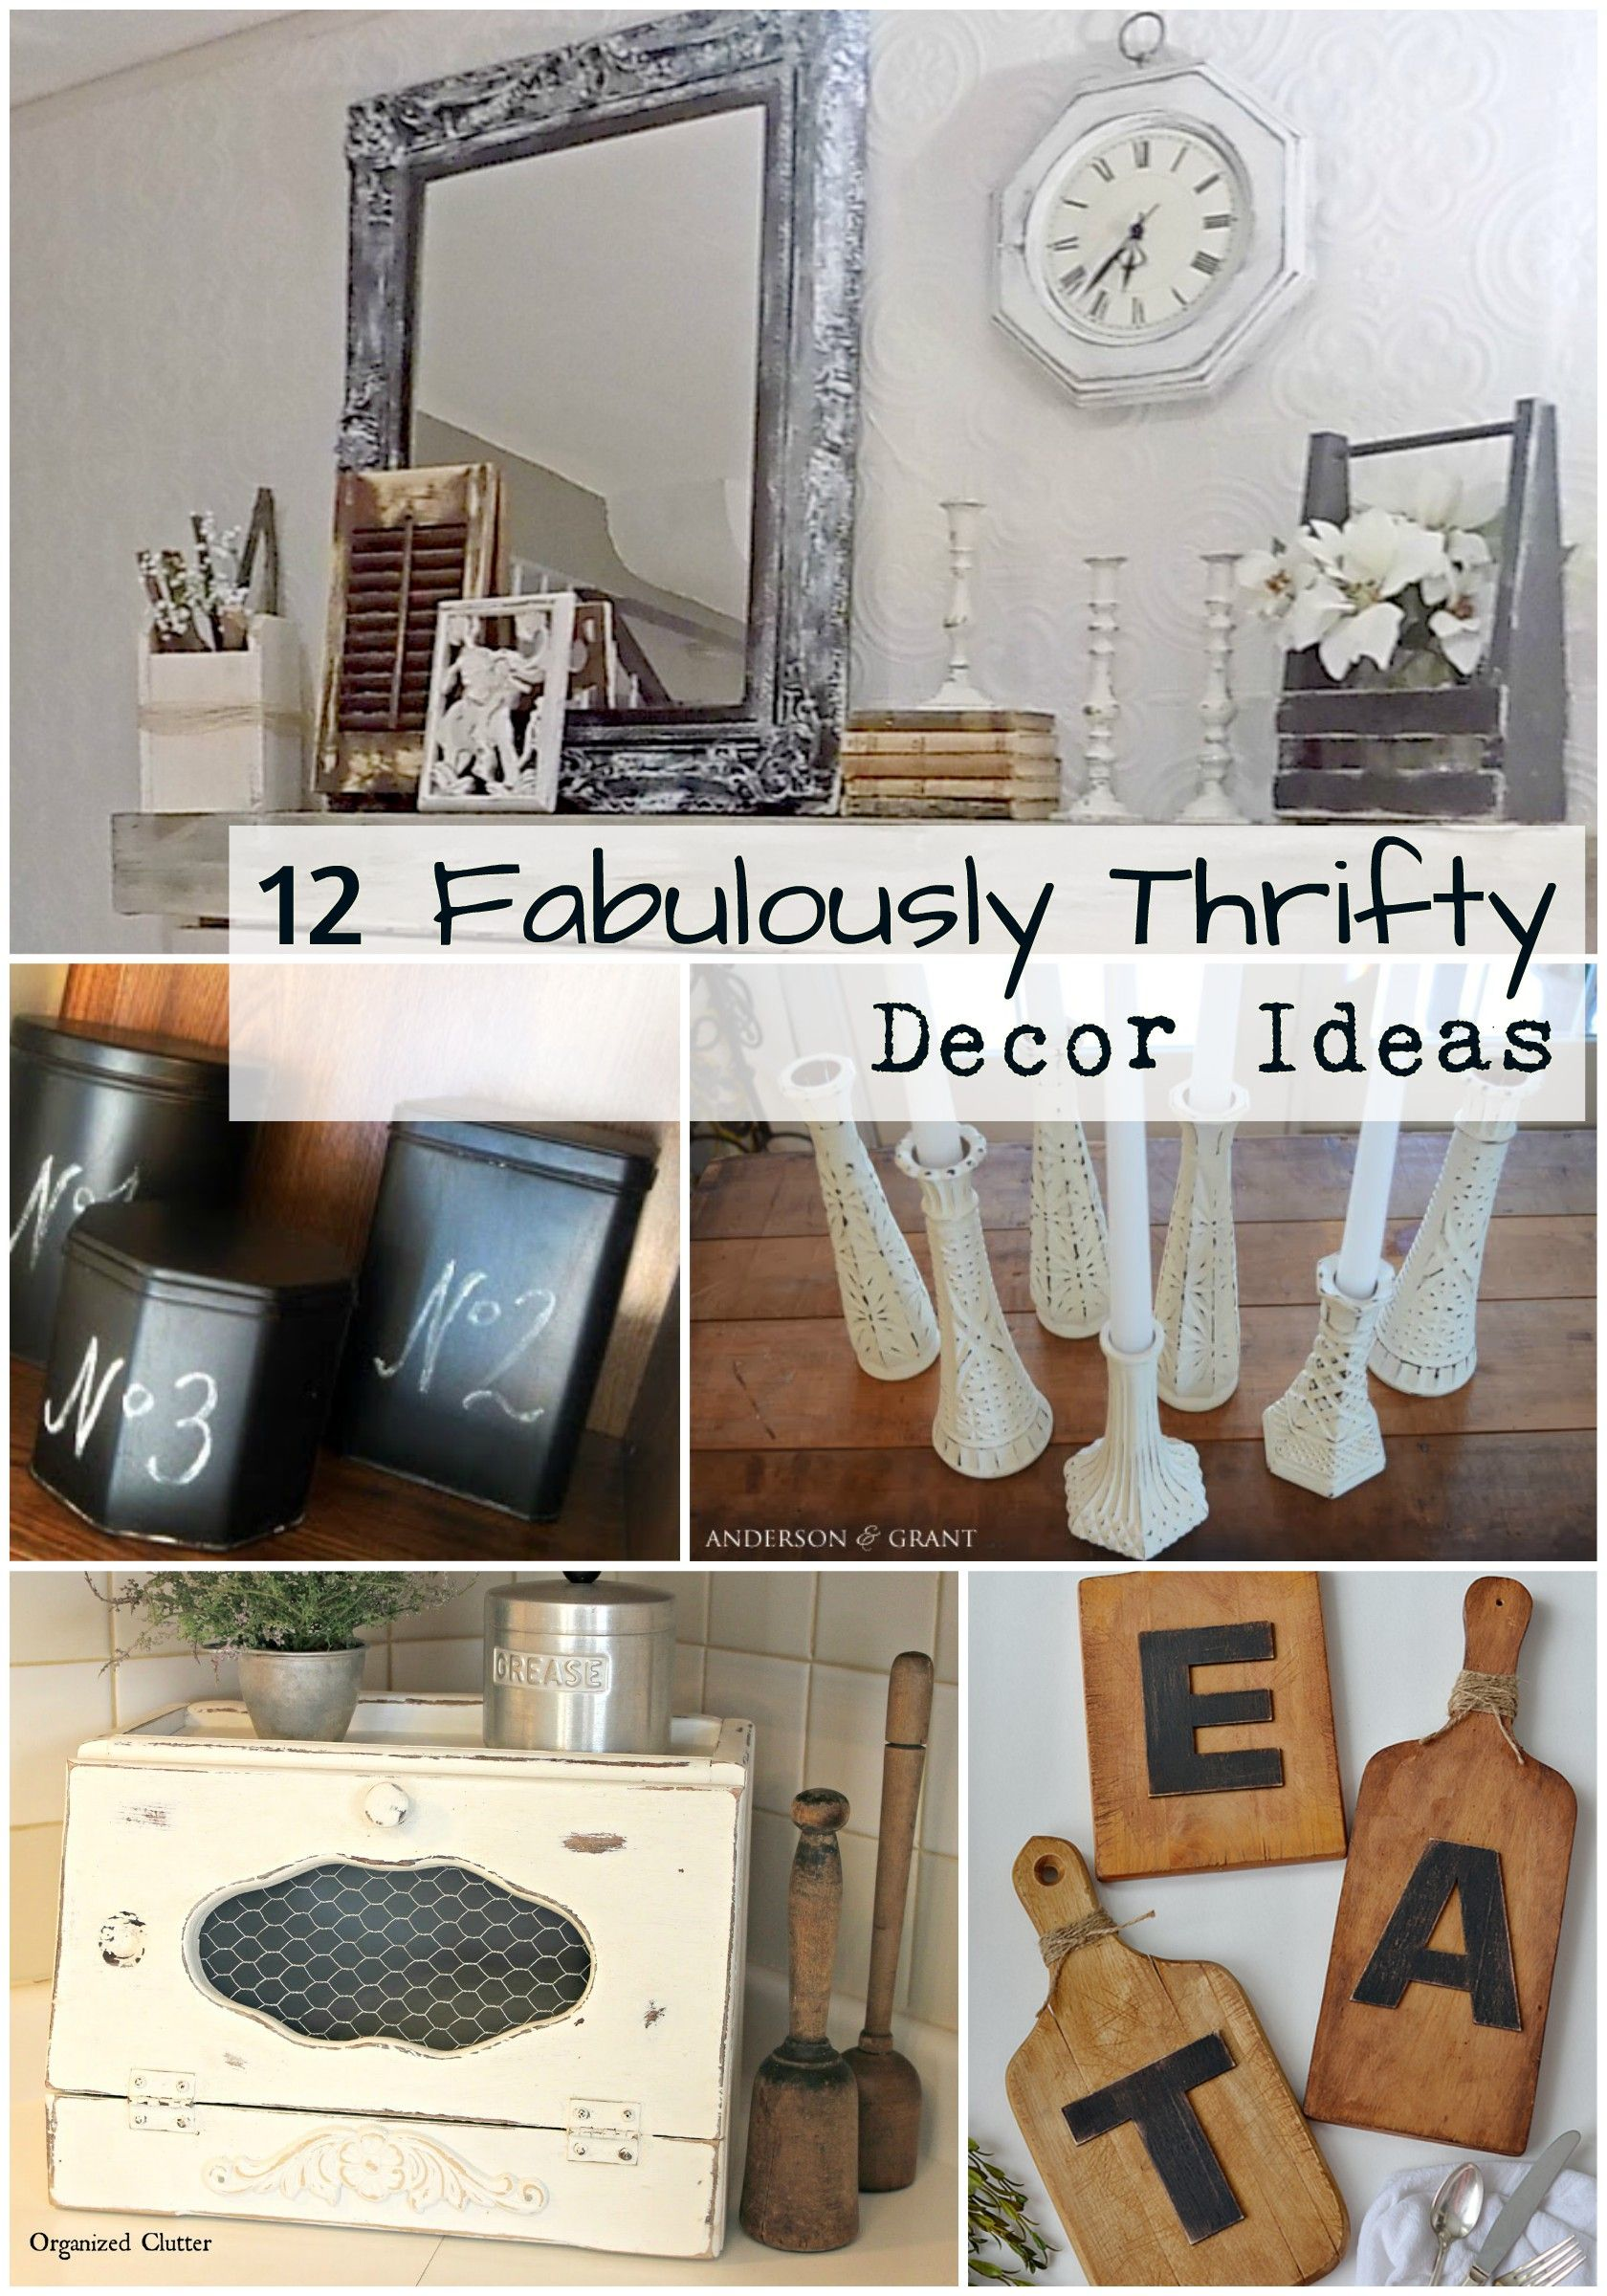 Decorate Your Home For Less By Refinishing Thrift Store Decor! Simple Home  Decor Ideas From